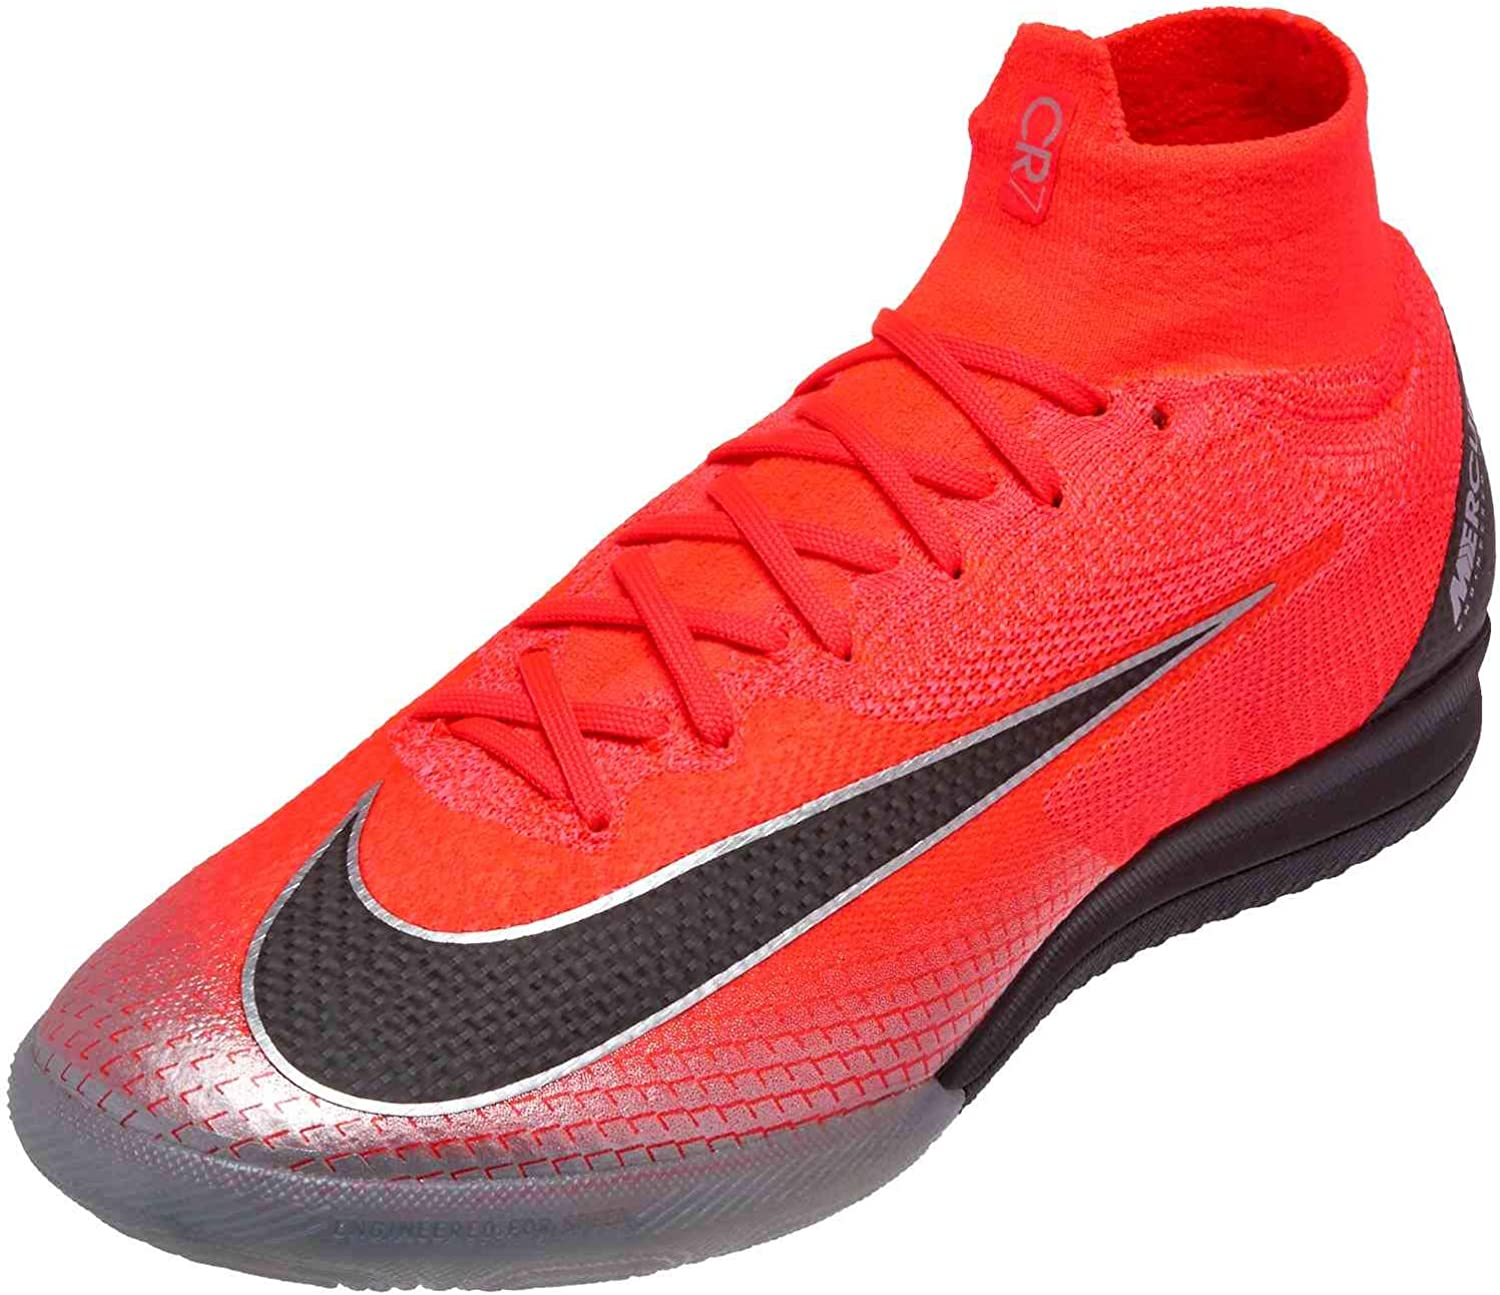 Nike Men S Superflyx 6 Elite Ic Indoor Shoes Court Football Boot Red Grey M11w125 Soccer